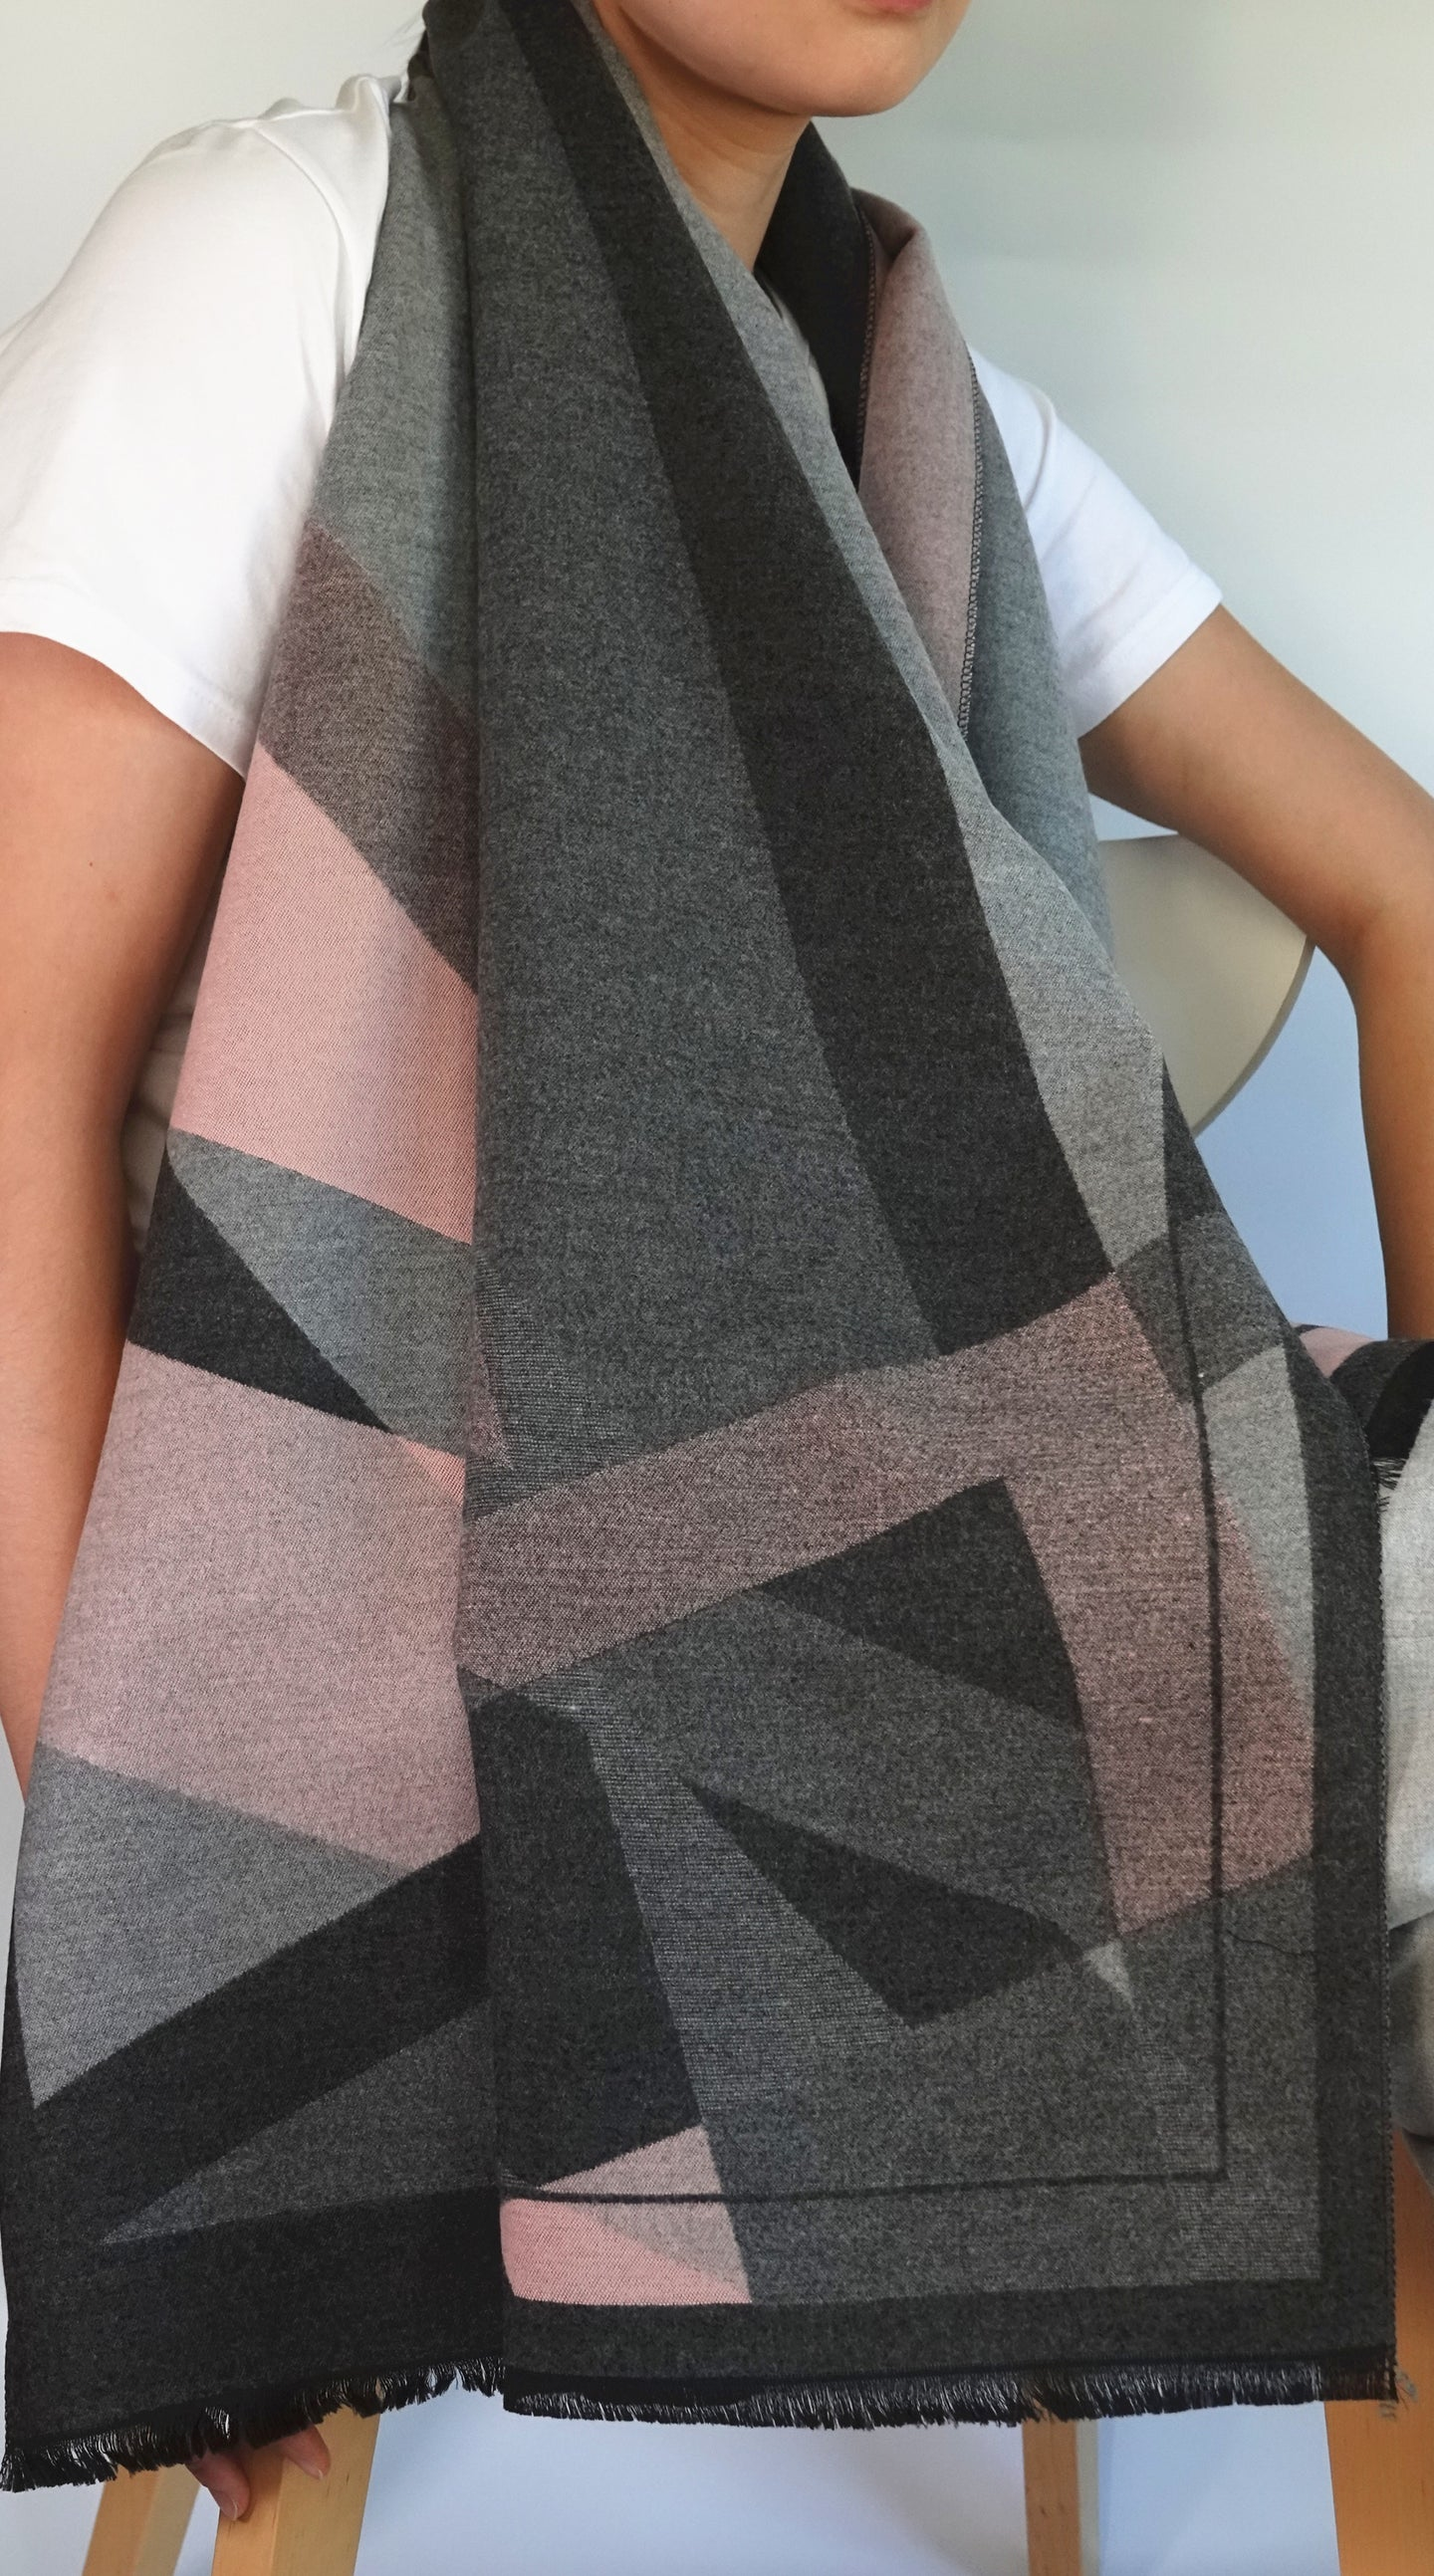 Pink and grey geometric blanket scarves by Green Scarf Boutique.